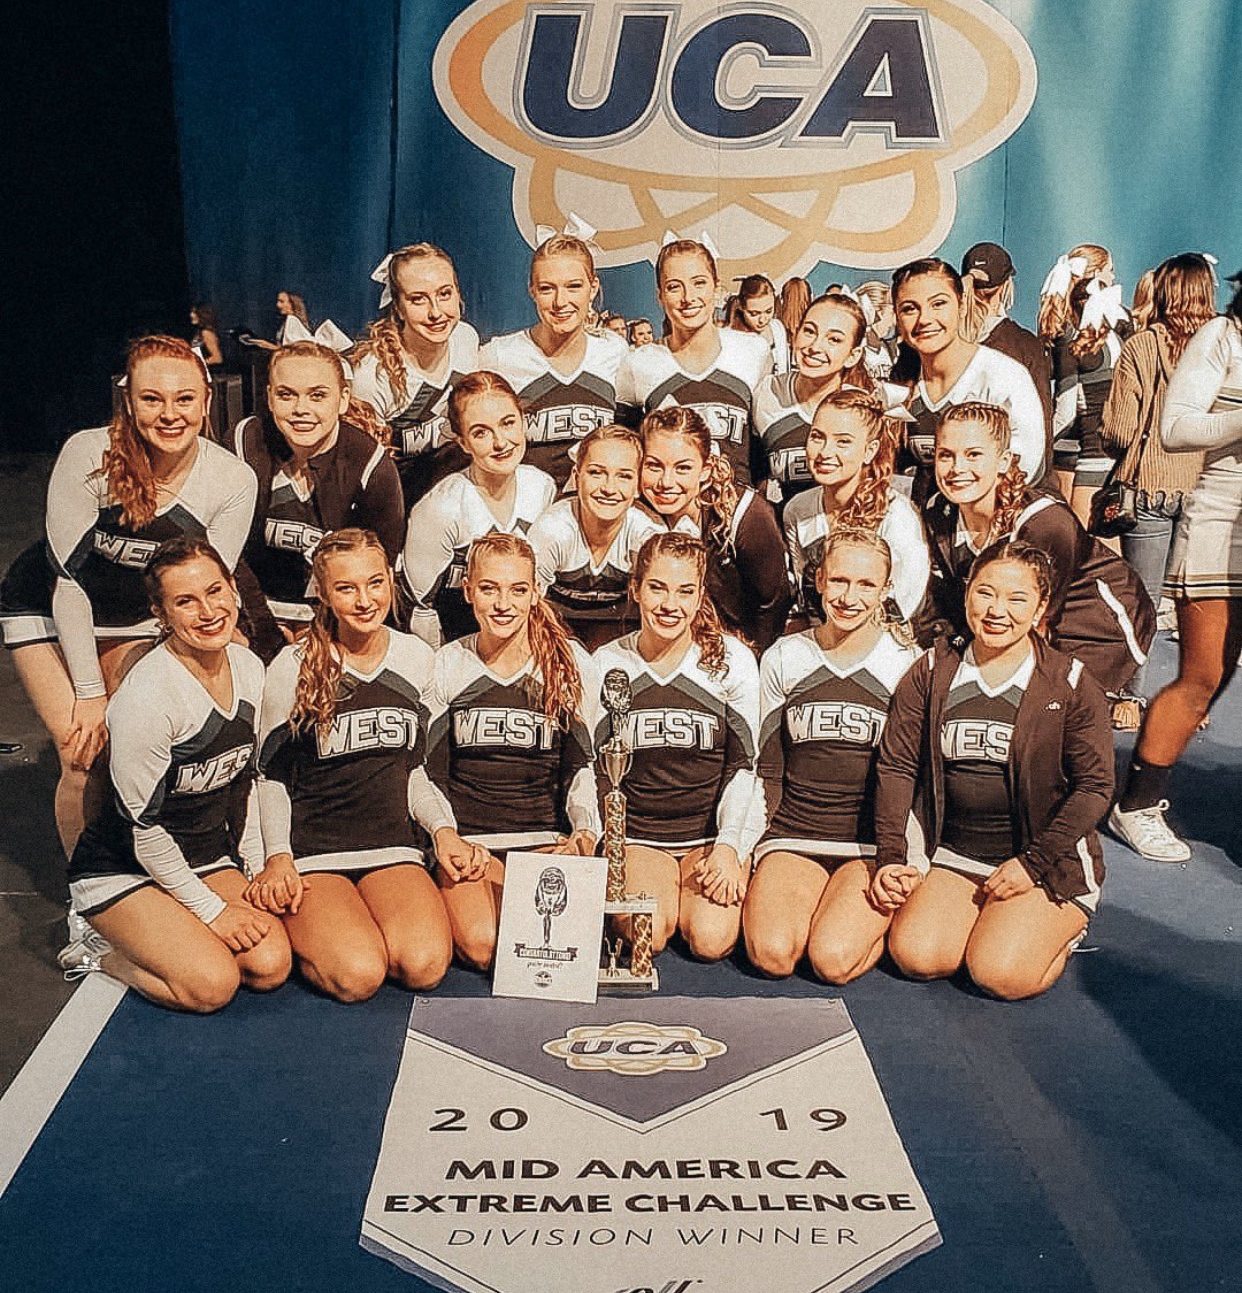 The Millard West Varsity Cheer team poses with their division winner banner along with their first place trophy.